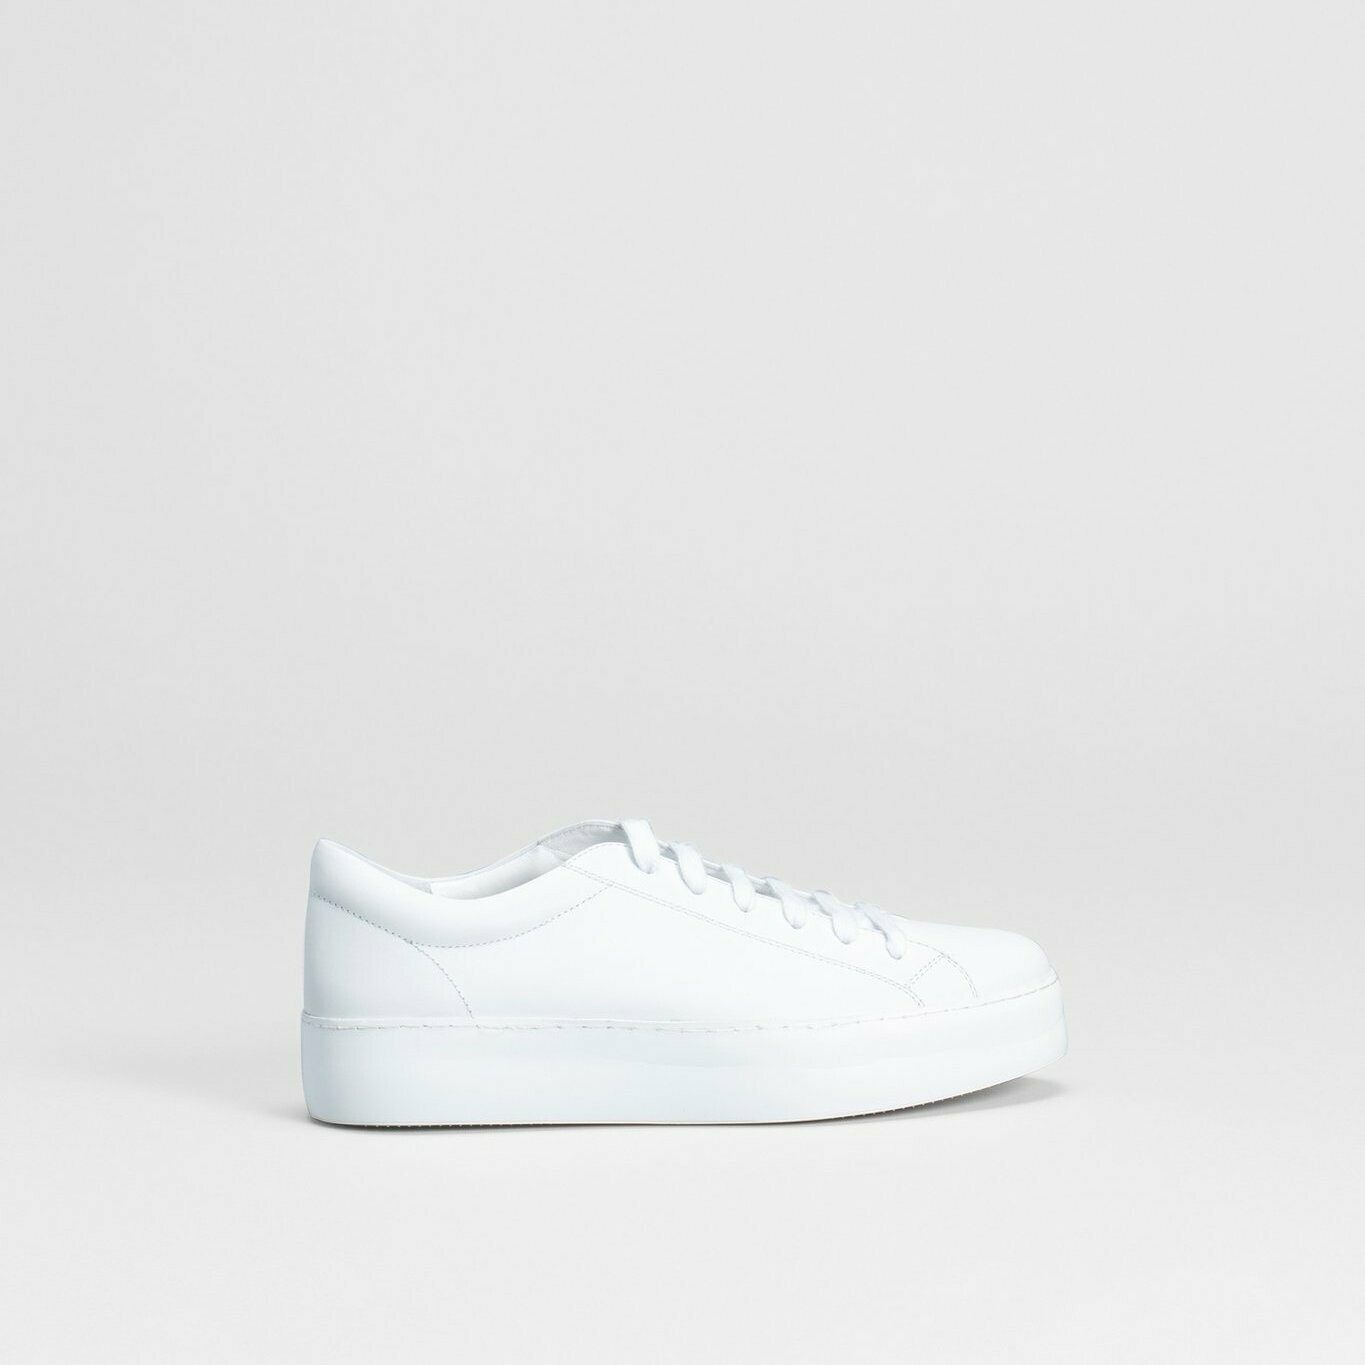 Vikran Sneaker - White (Size 39 and 42 left)